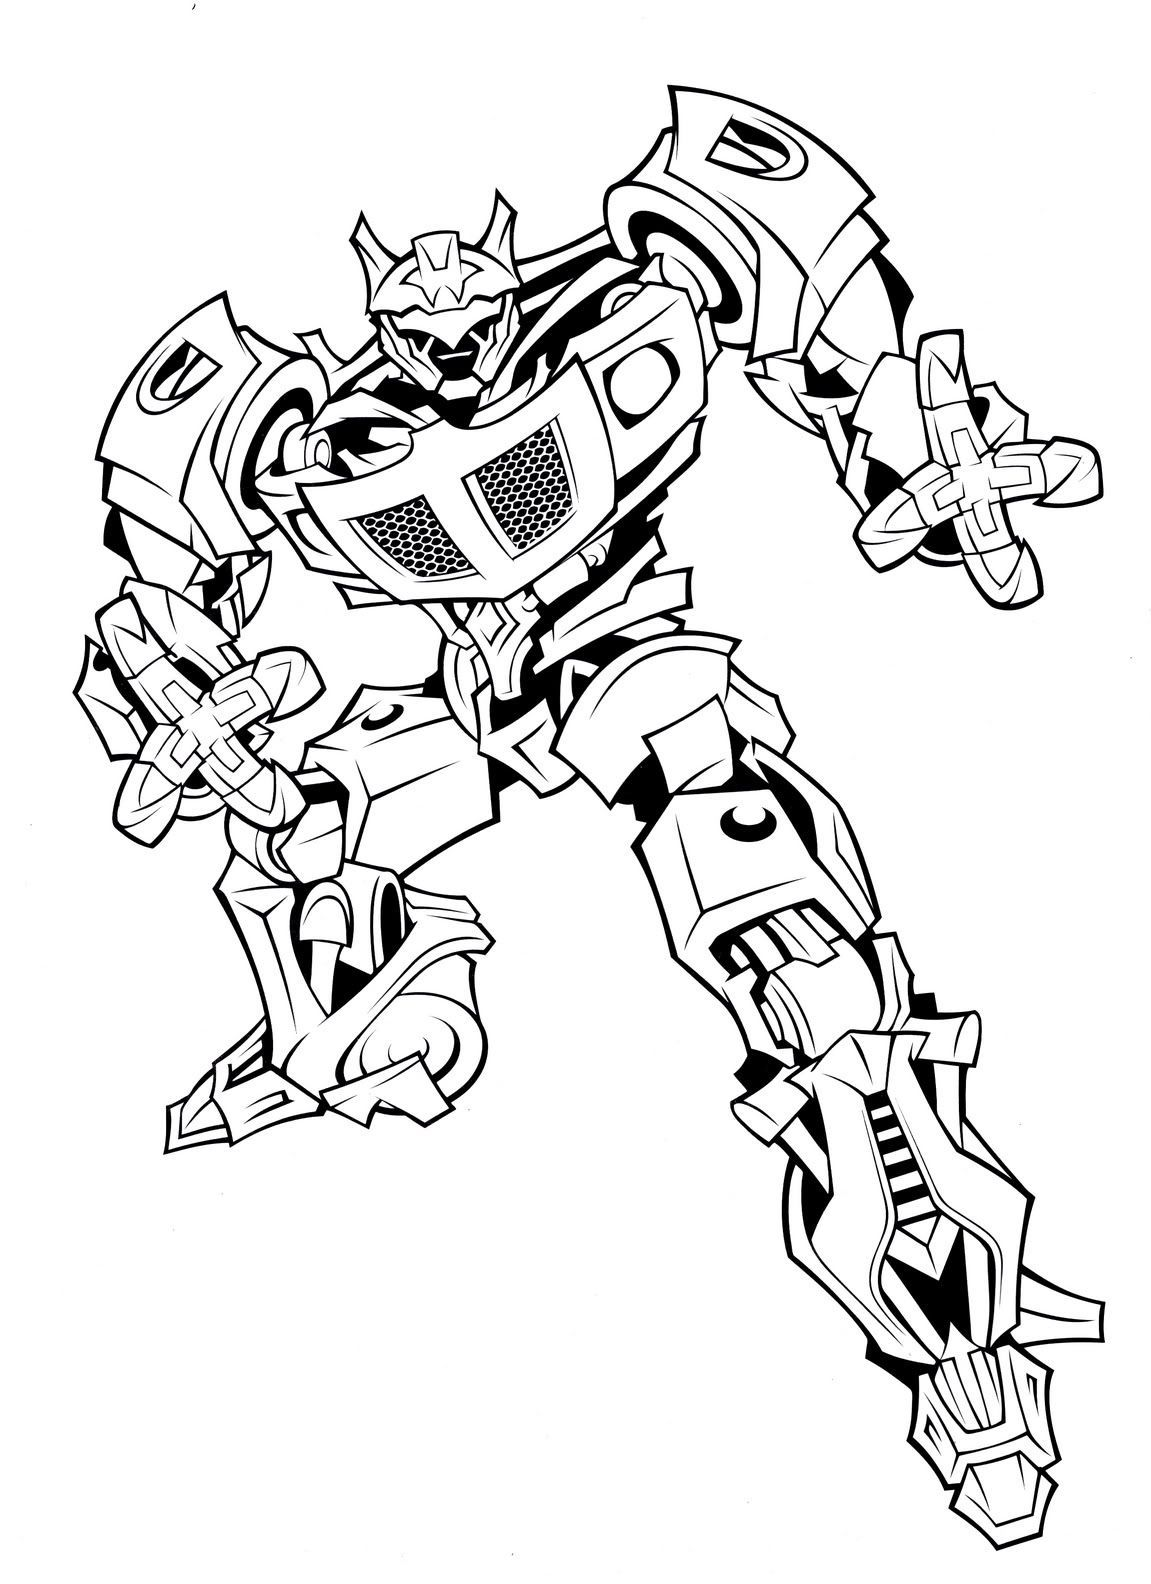 Cool Transformers Coloring Pages For Kids Printable Bee Coloring Pages Transformers Coloring Pages Coloring Pages